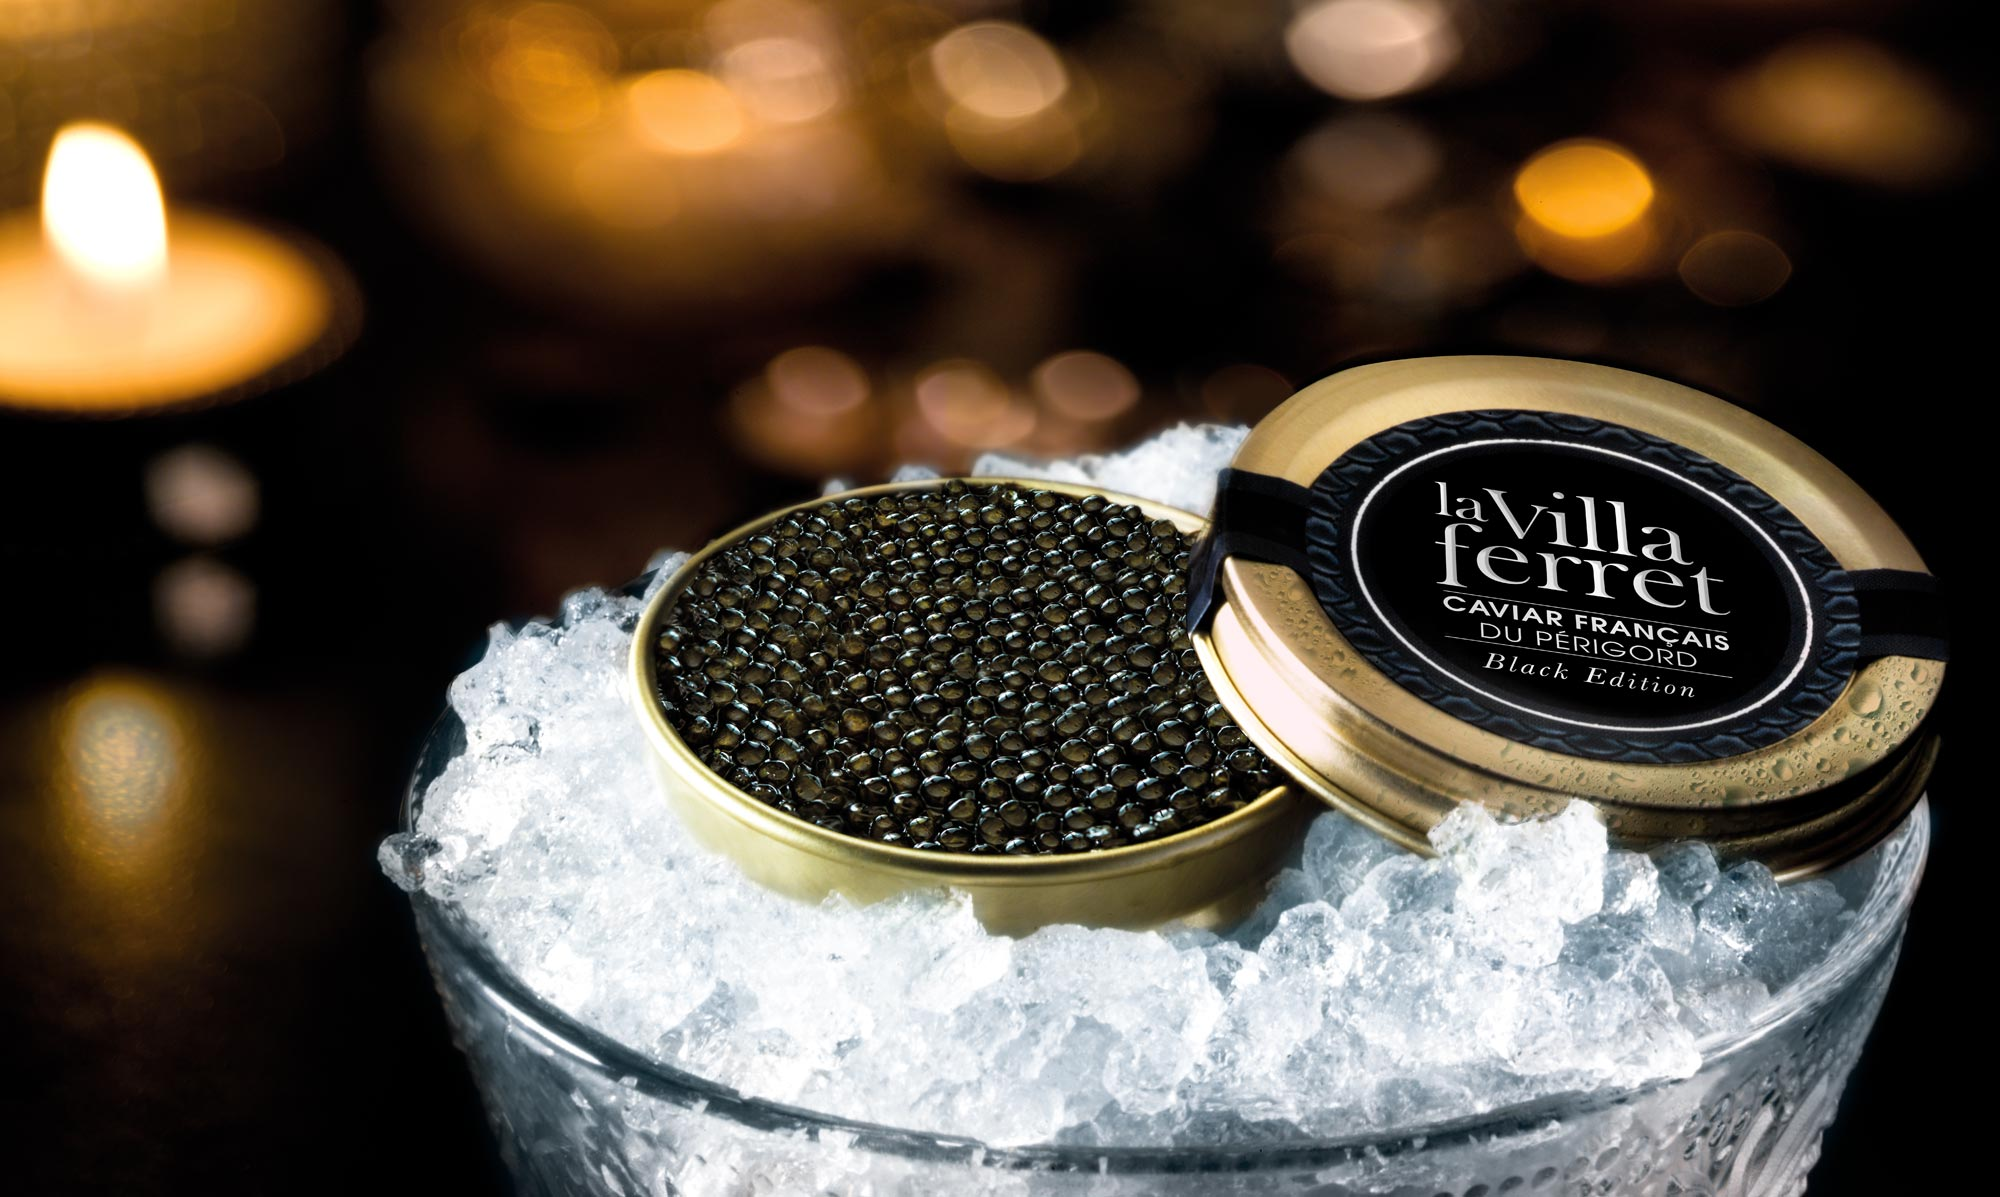 Agence de communication Brand to Design Bordeaux La Villa Ferret Caviar